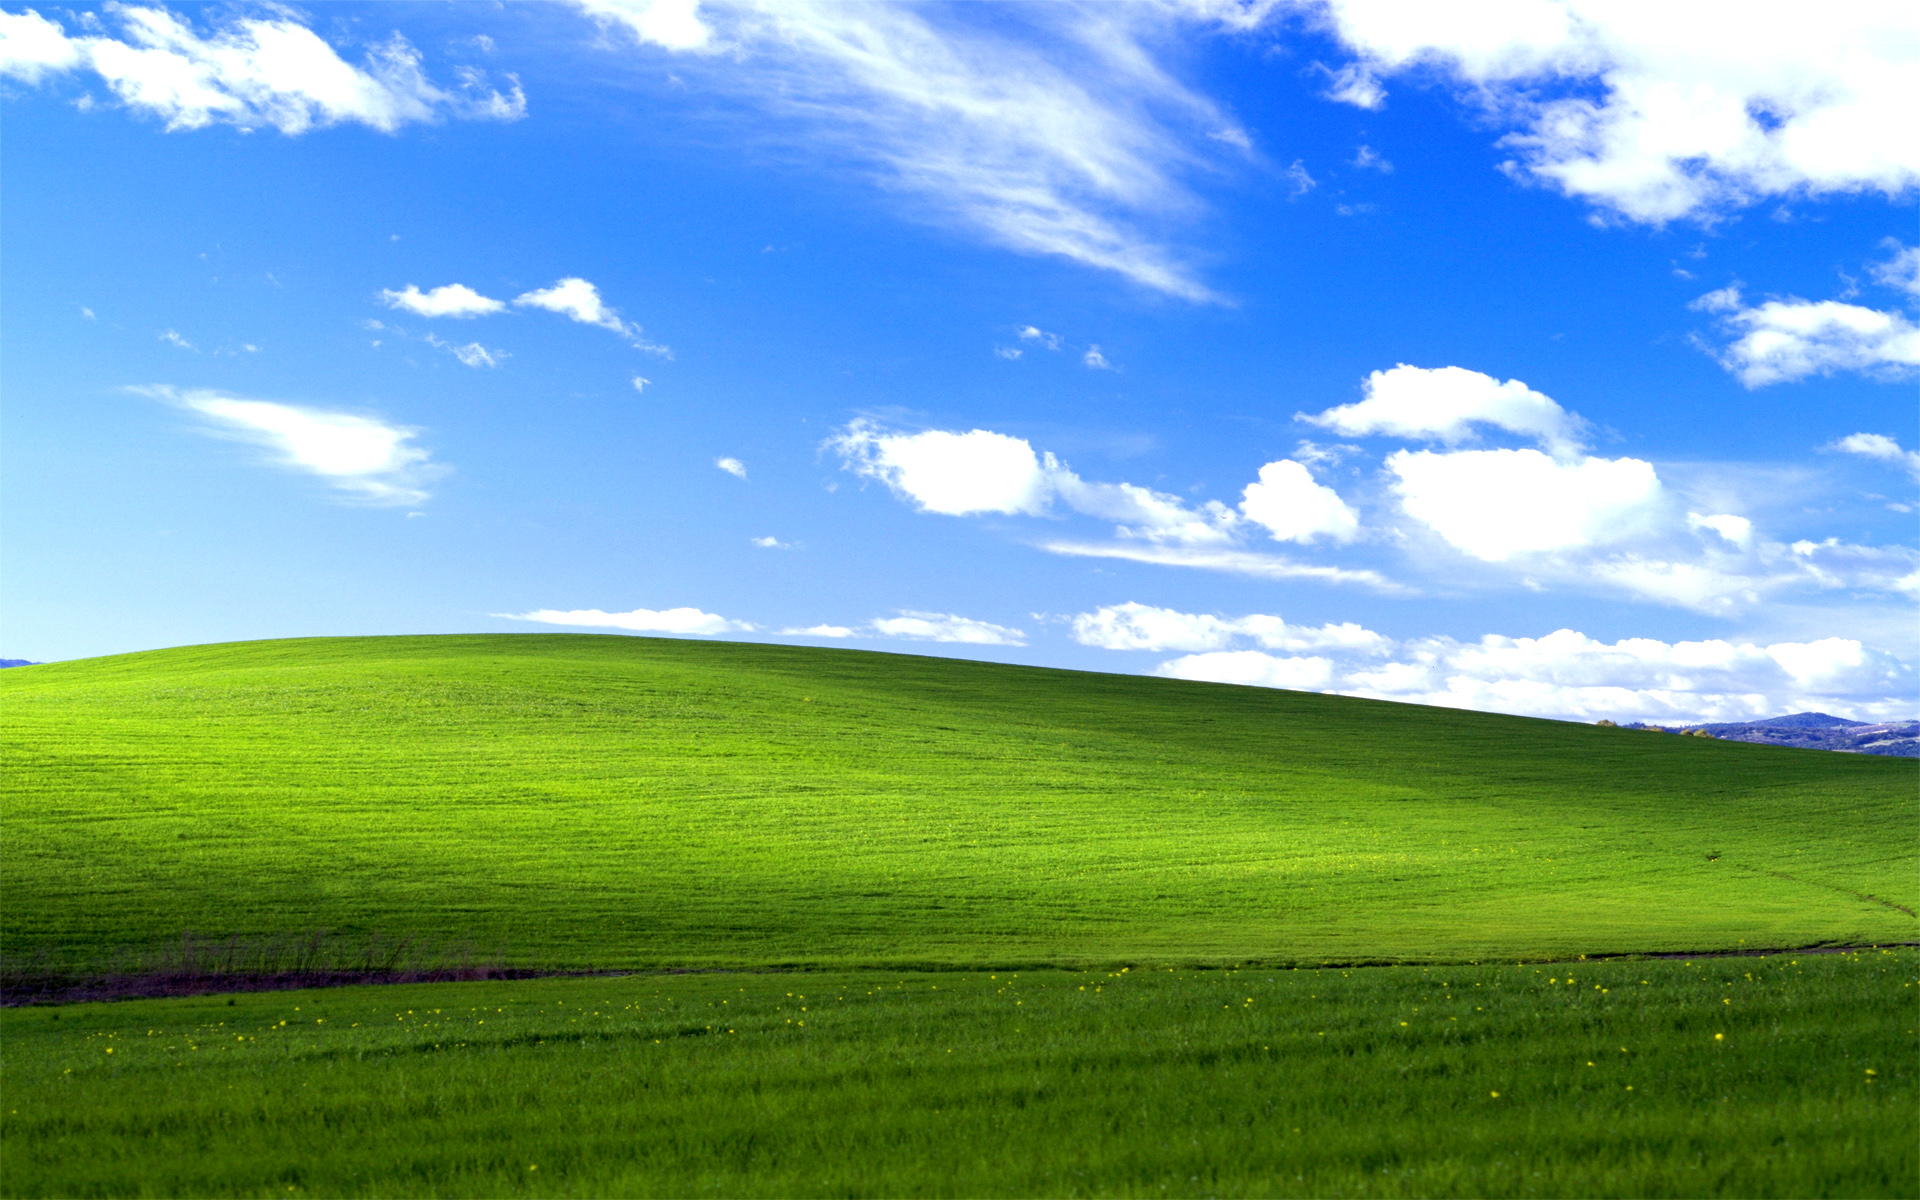 Windows Xp Grass Wallpaper